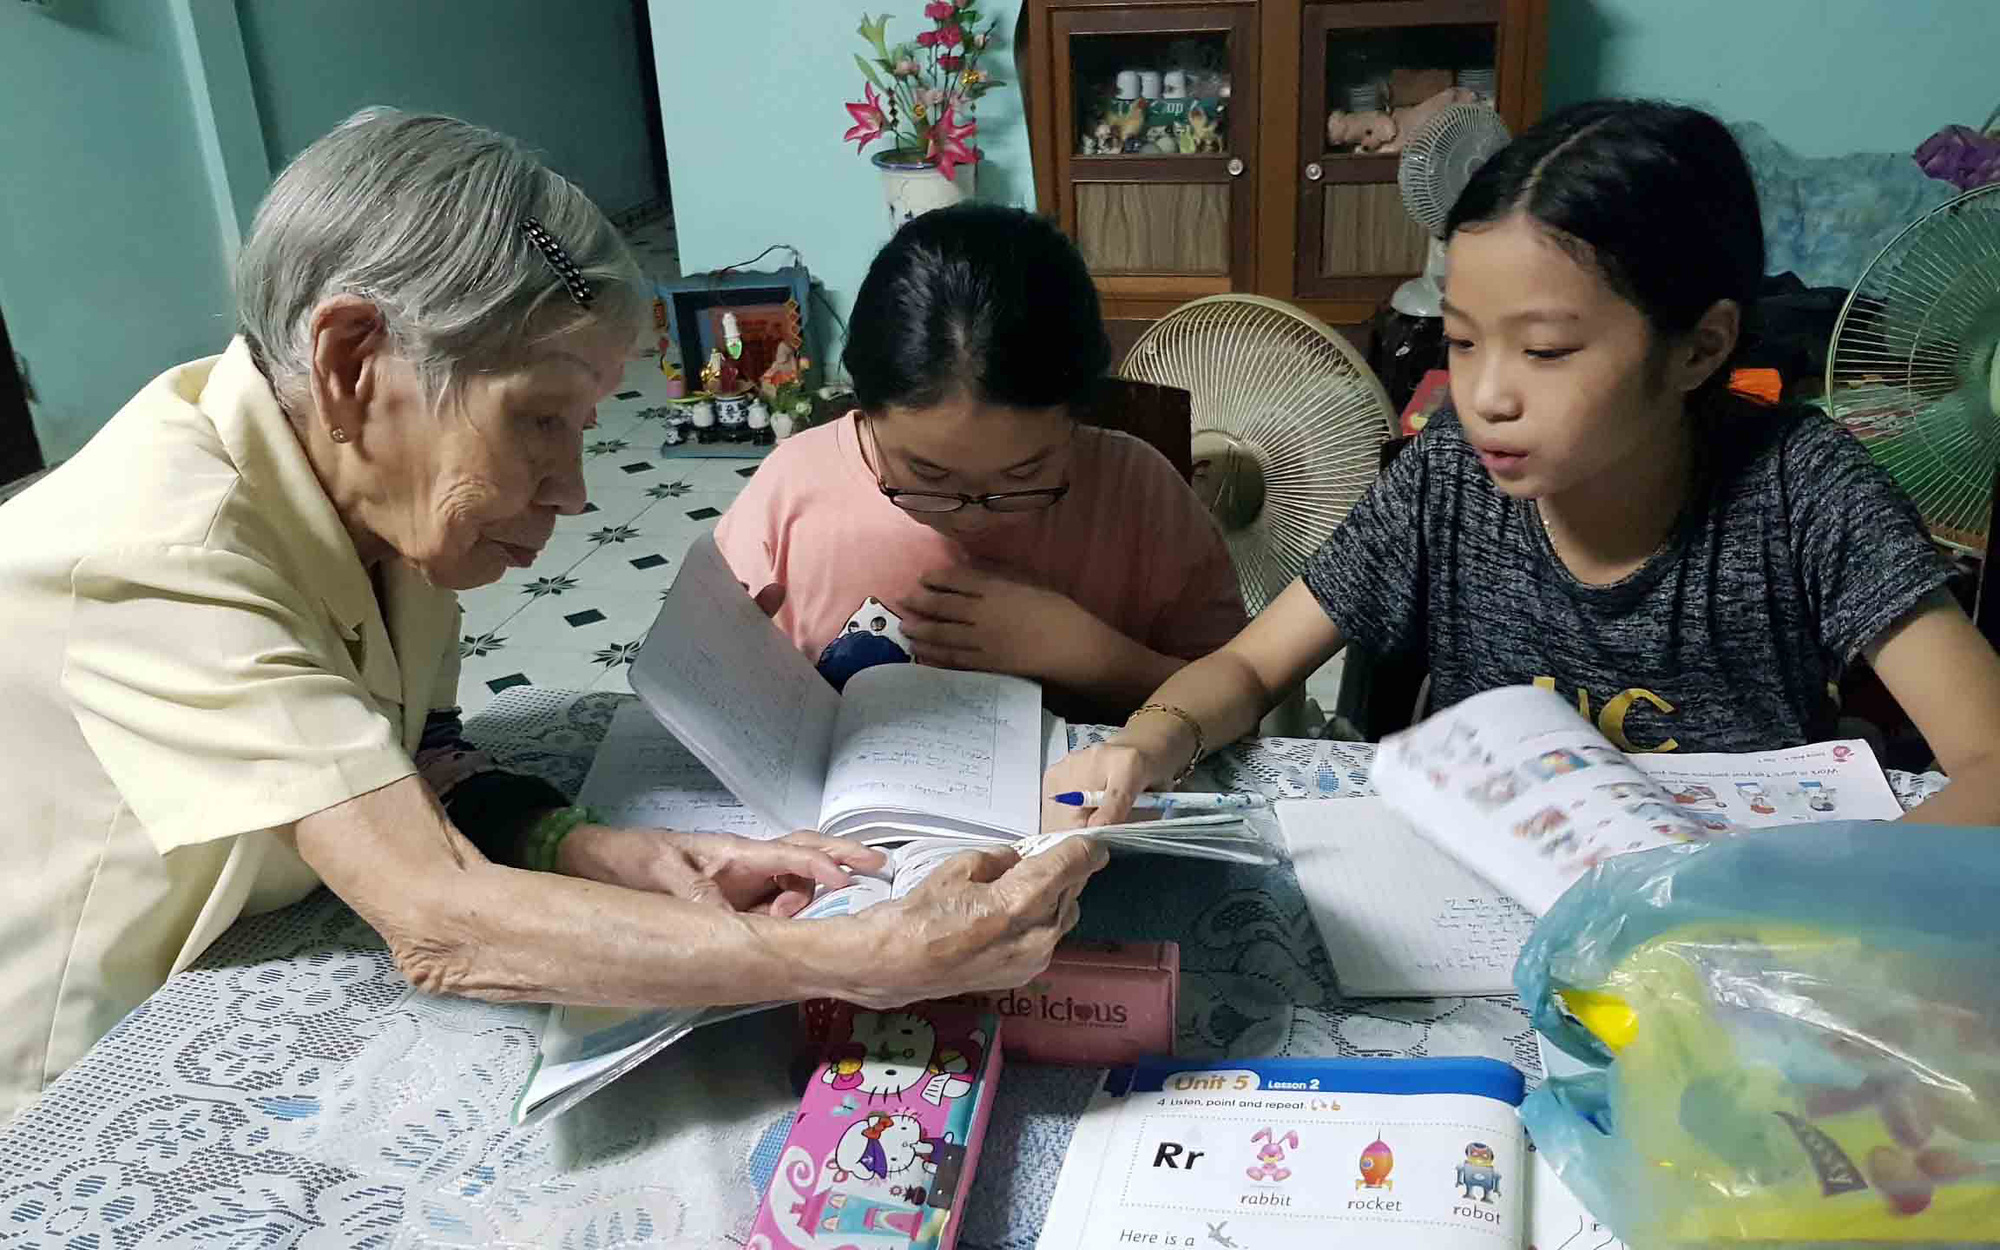 Nonagenarian teacher offers free tutoring, meals to needy students in central Vietnam